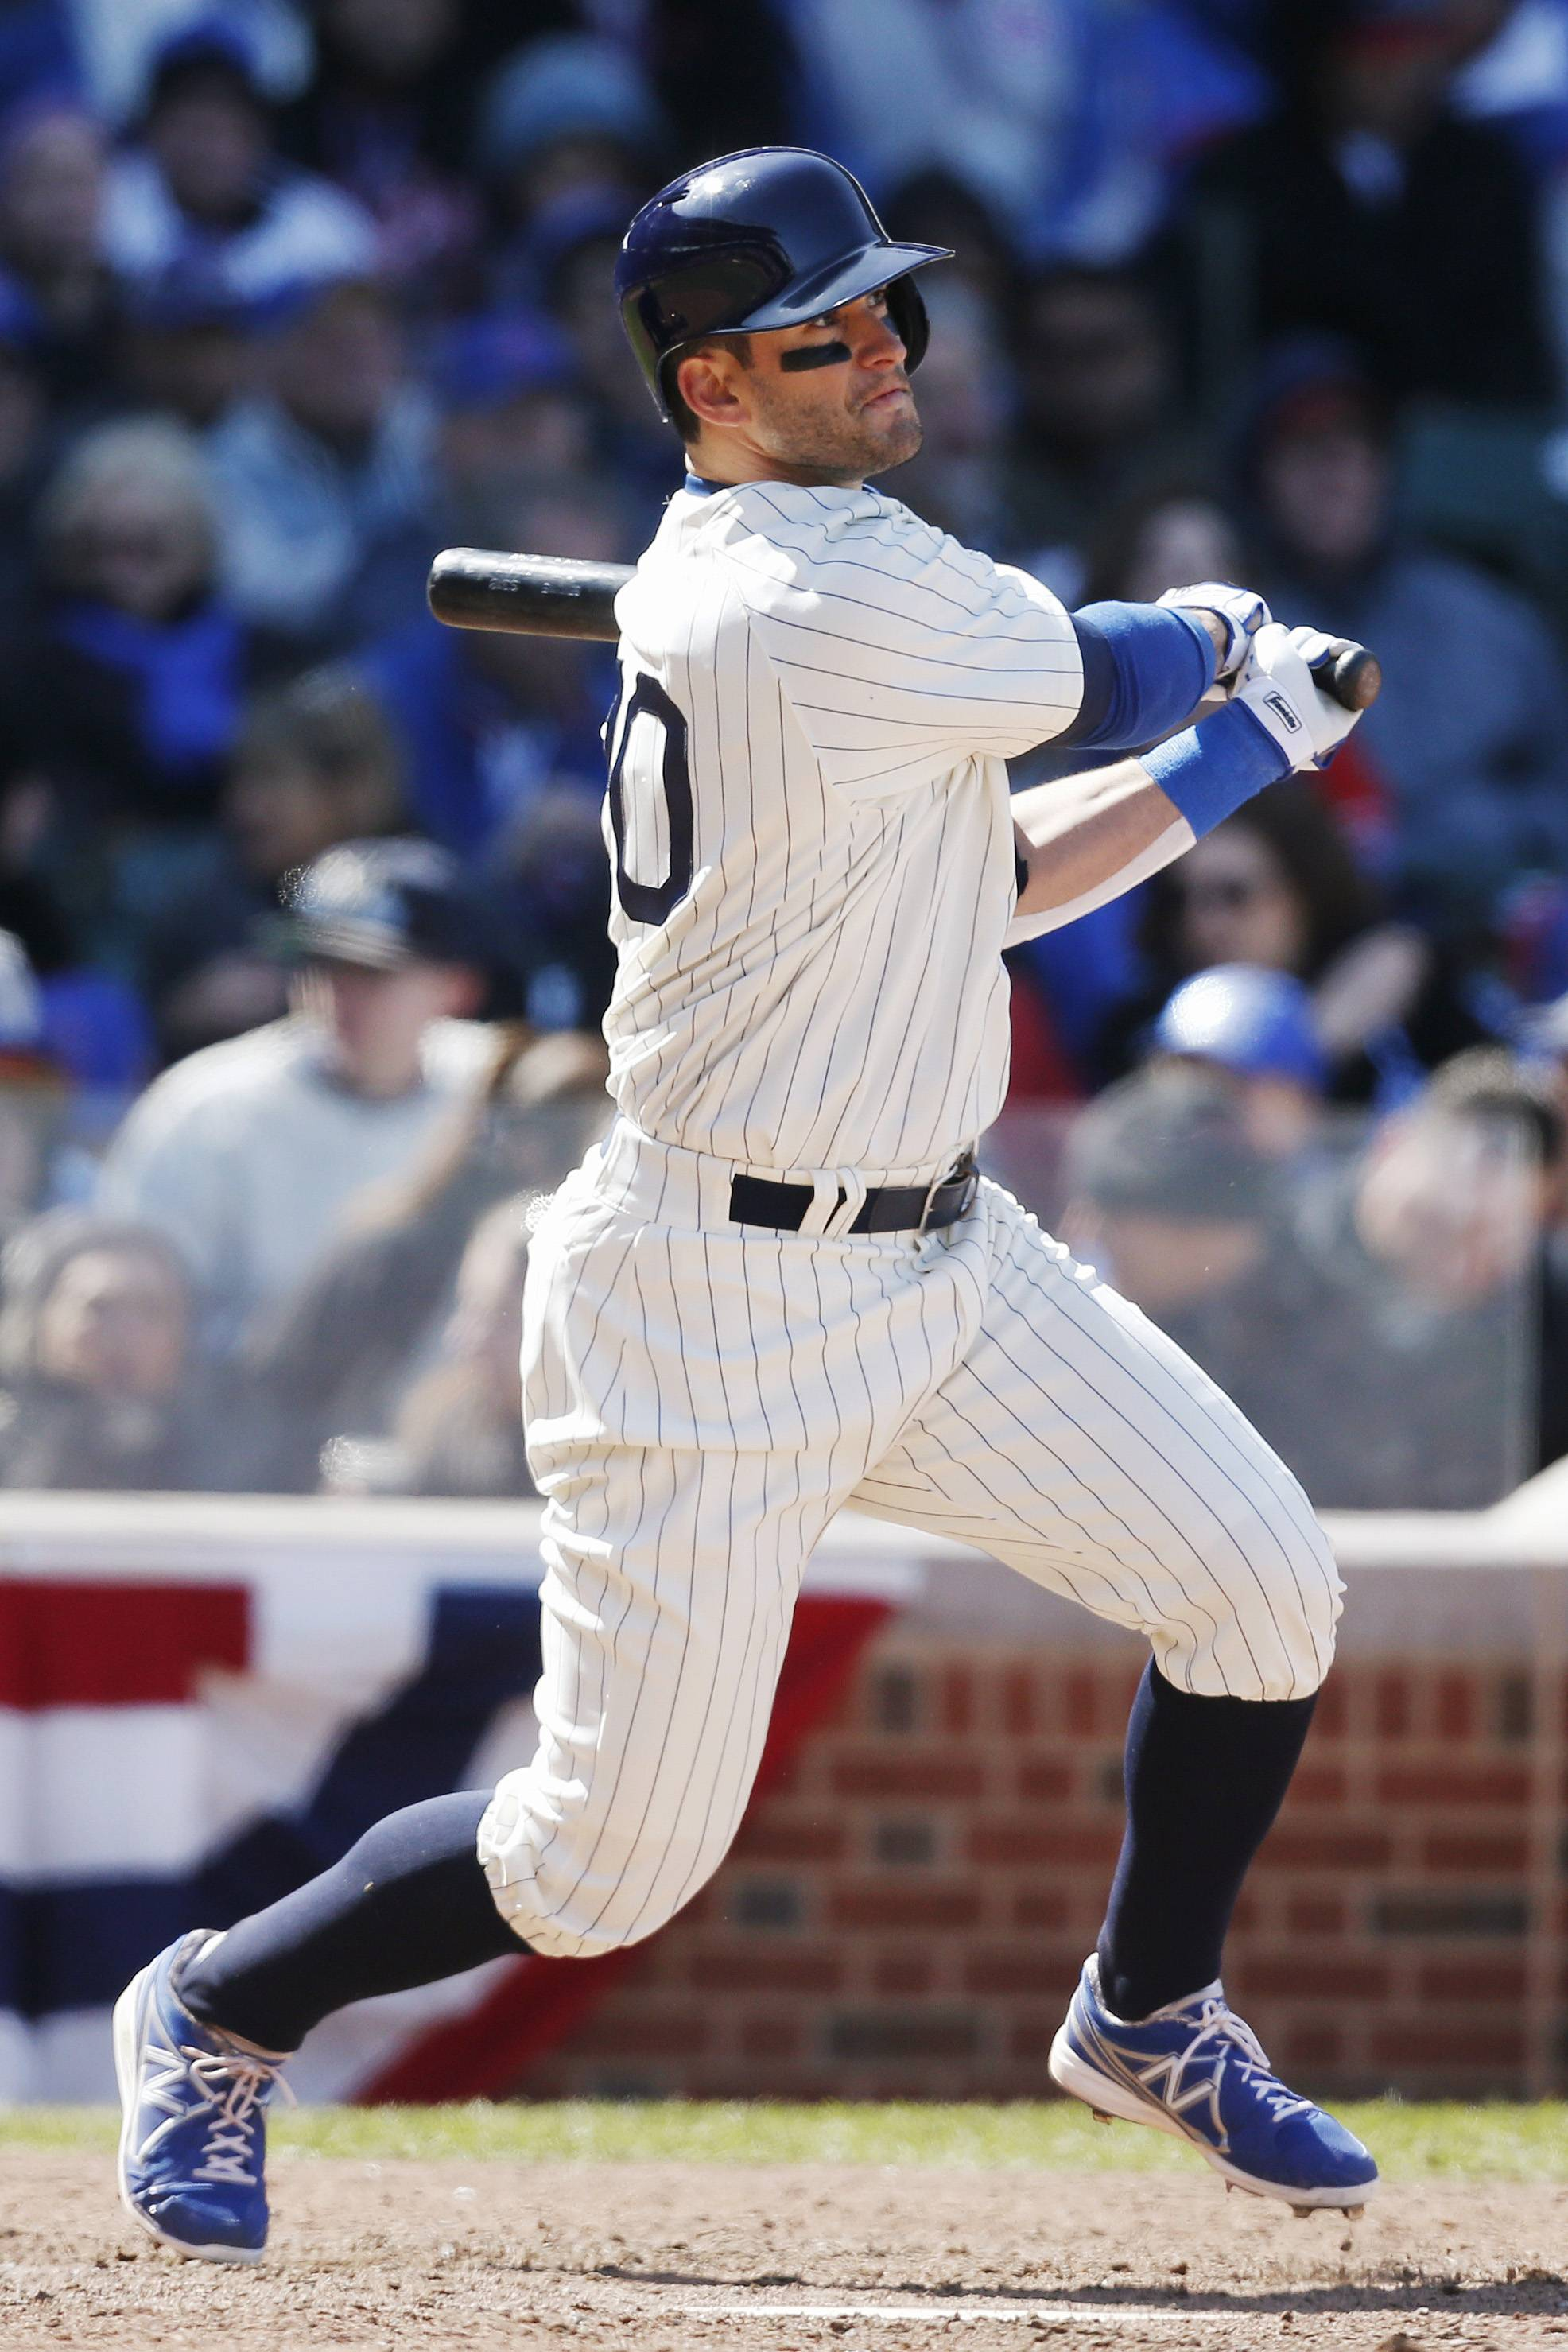 The Cubs Justin Ruggiano watches his two-run homer against the Arizona Diamondbacks during the sixth inning Wednesday at Wrigley Field. The Cubs lost to the Diamondbacks 7-5 on Wrigley Field's 100th anniversary.